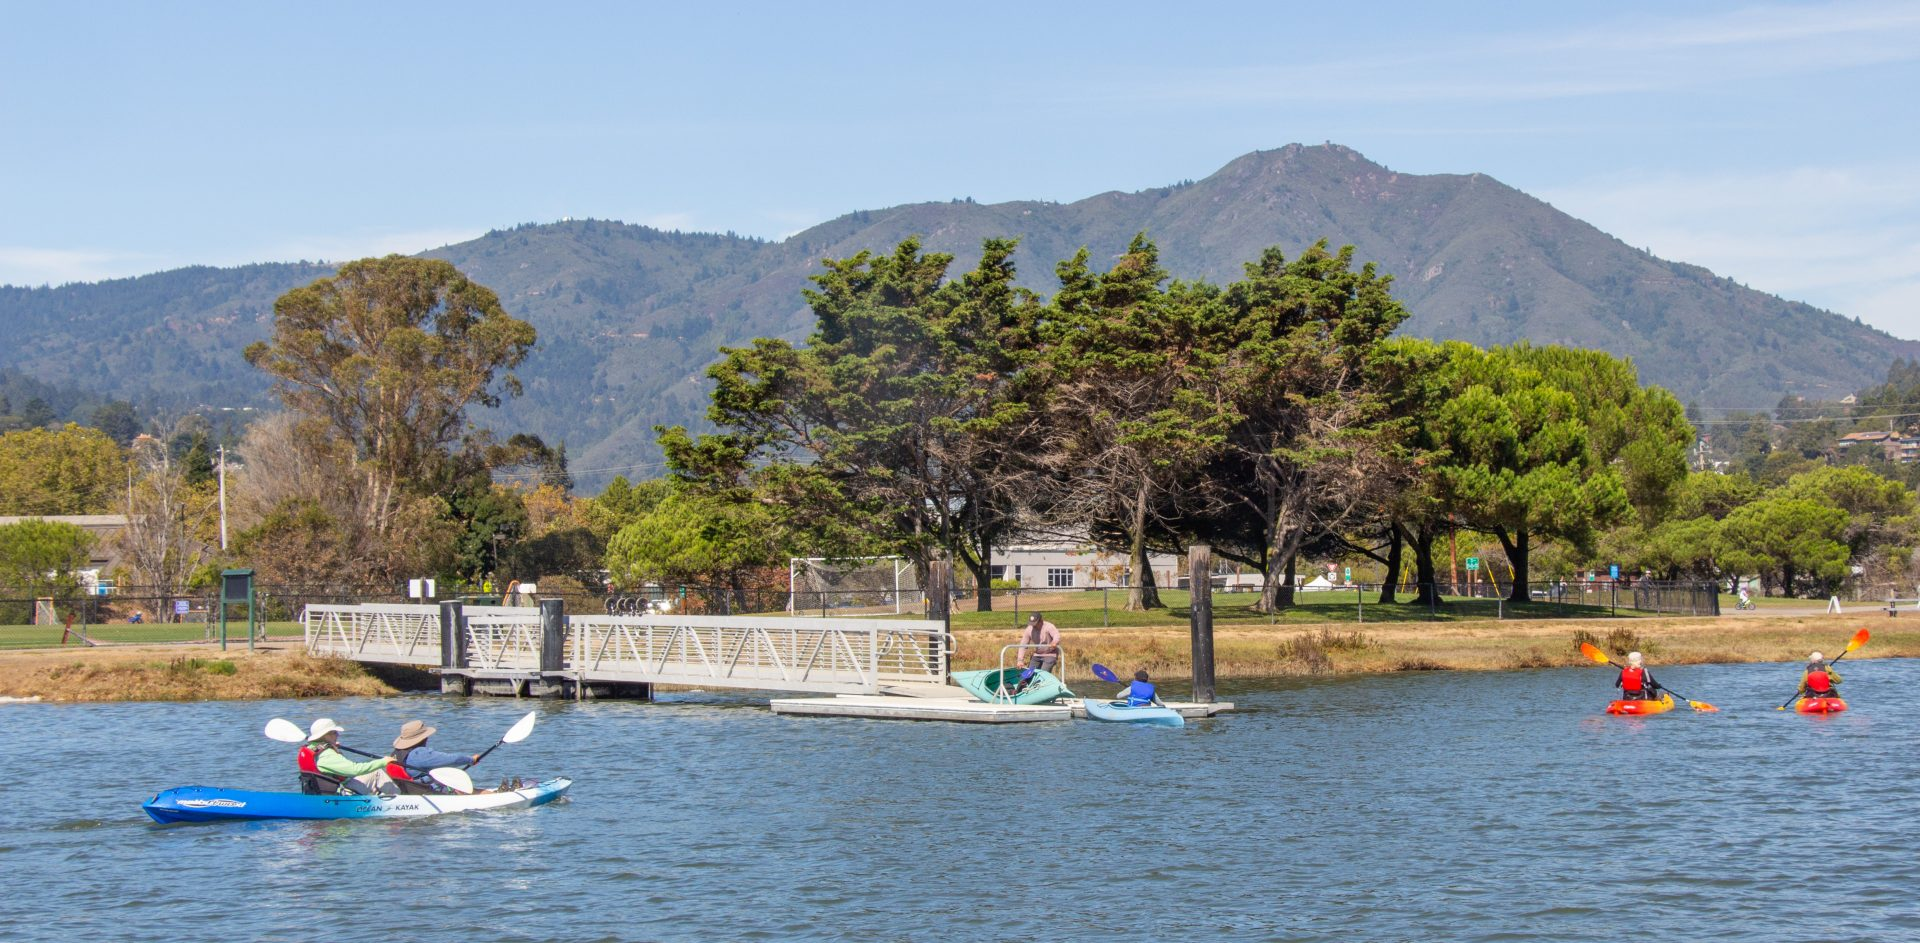 Mount Tamalpais looms over trees and pier, with kaaykers in foreground